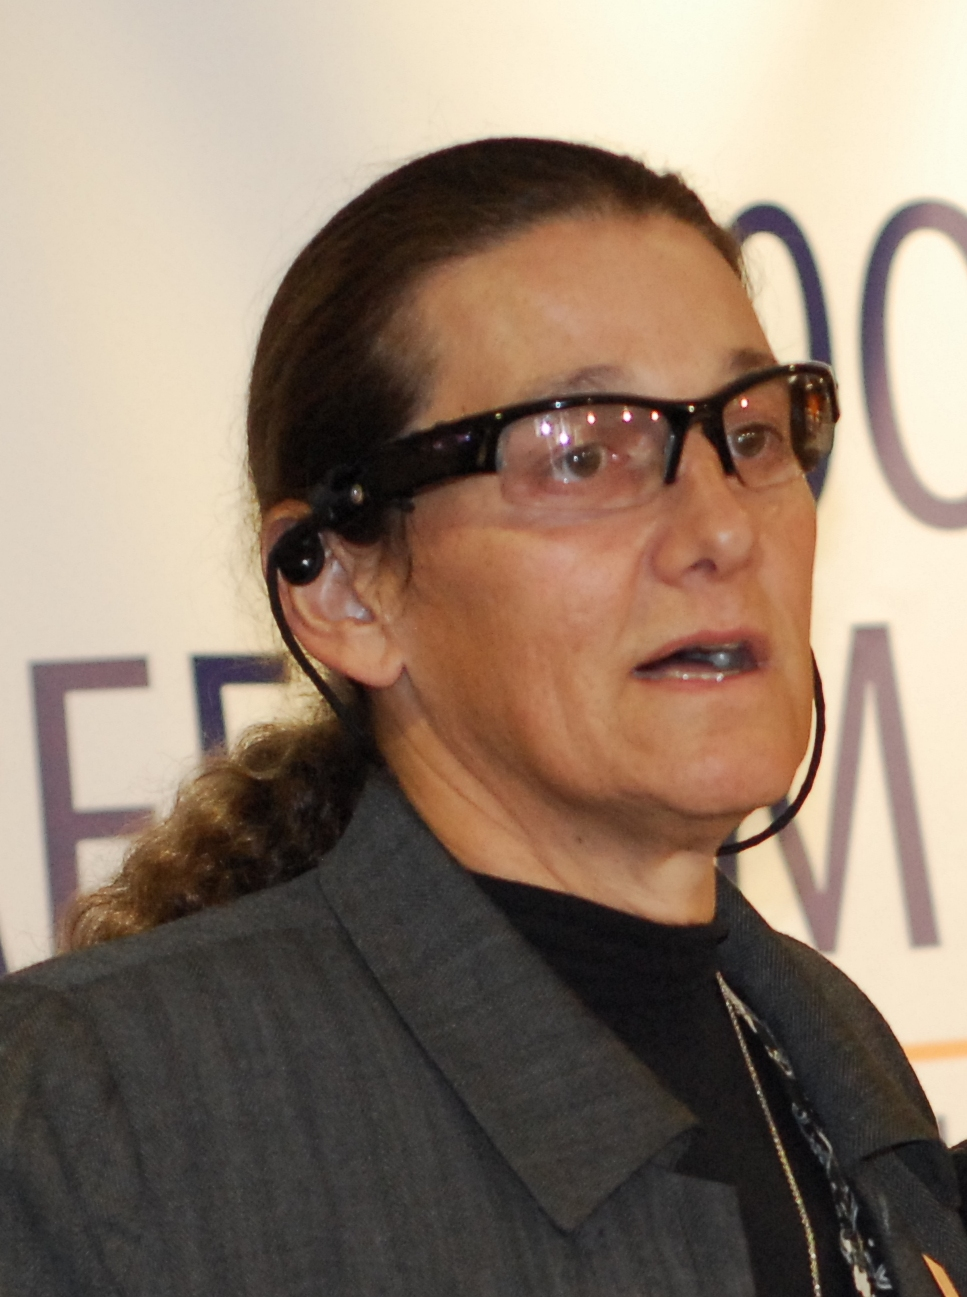 Will Entwicklung ohne Grenzen: Martine Rothblatt (Foto: Woofhull Sexual Freedom Alliancederivative work/CC CY-SA 3.= via Wikimedia Commons)